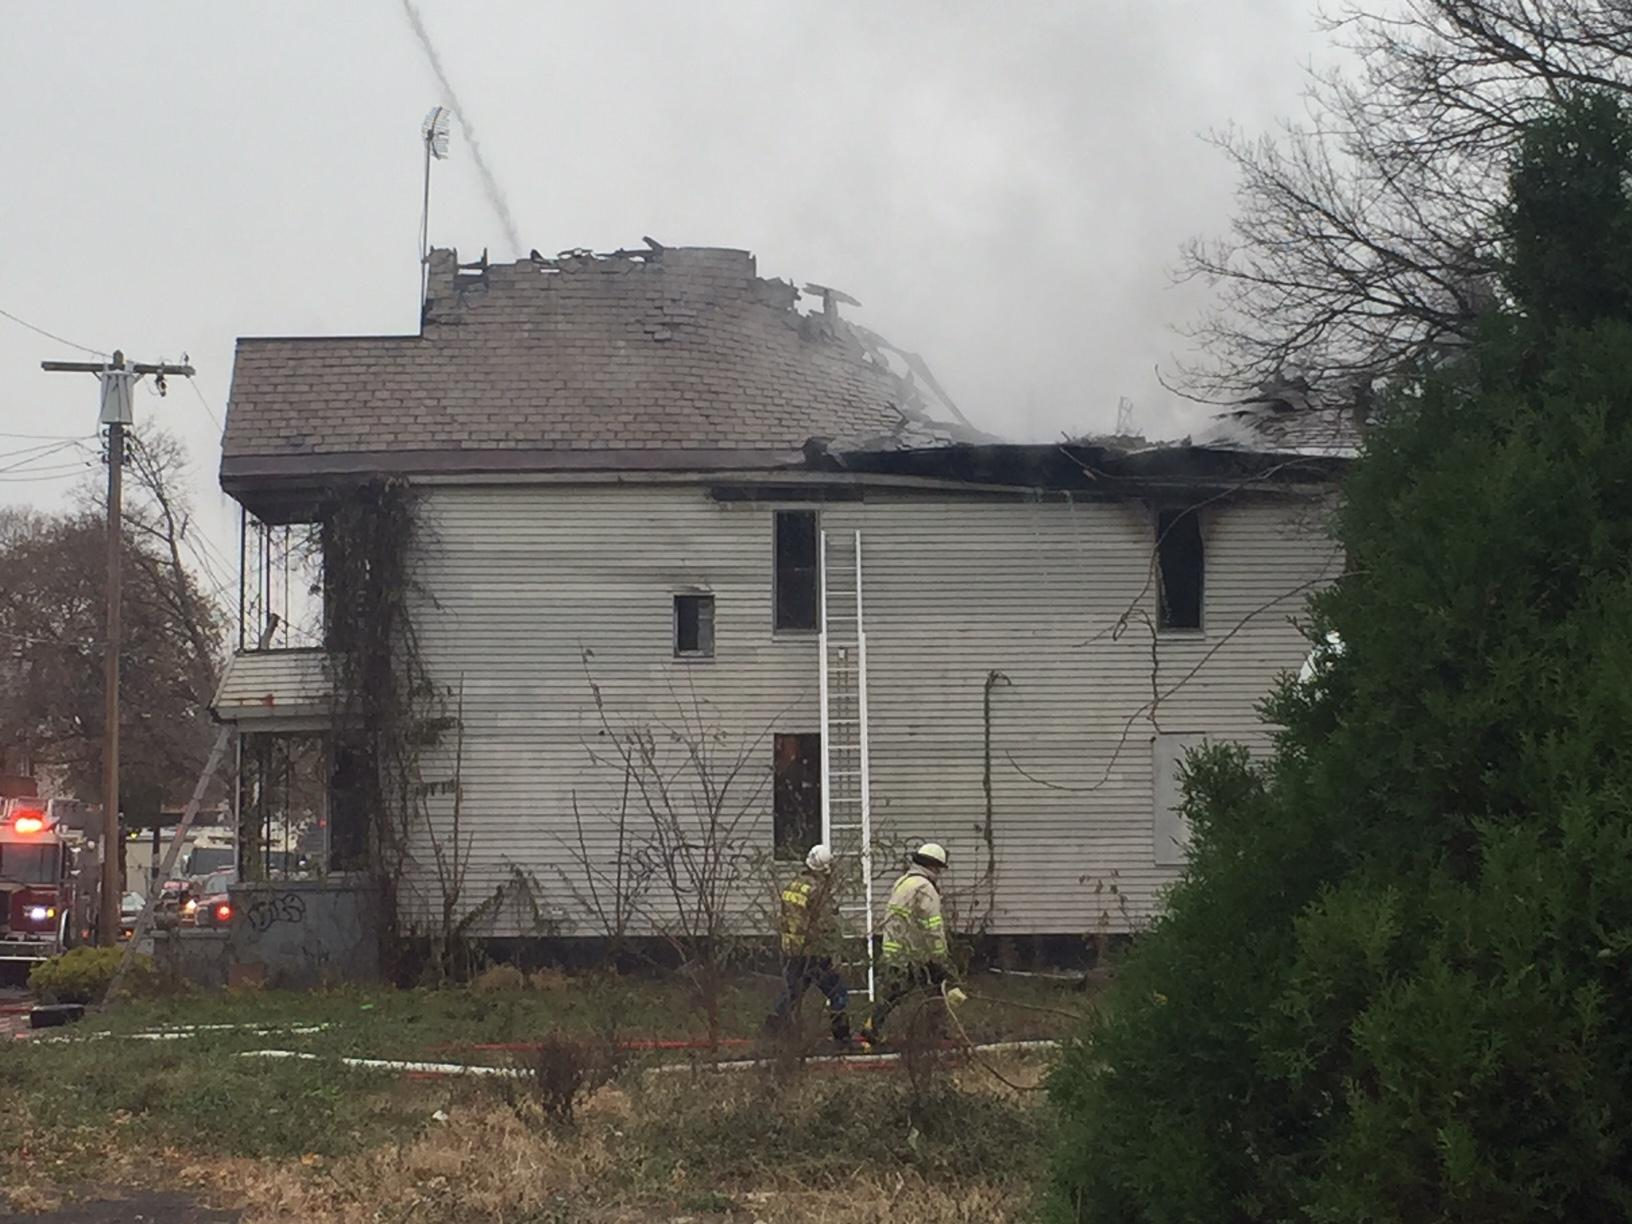 Fire crews battle fire at vacant home in Schenectady